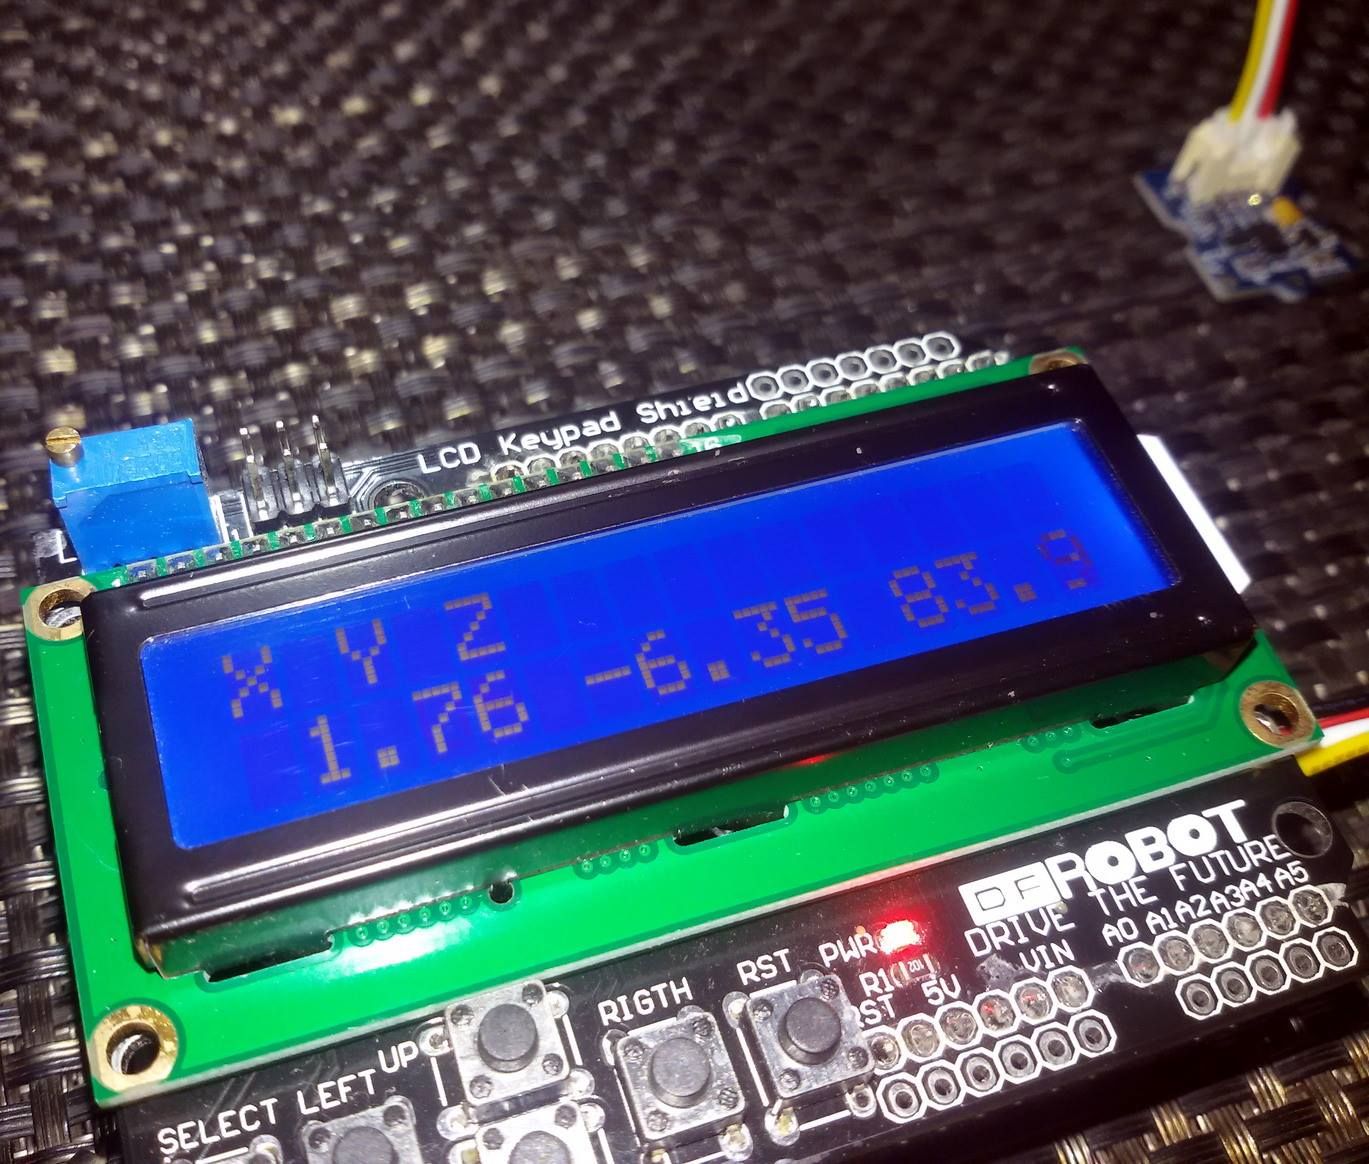 Libstock Adxl345 I2c Triple Axis Accelerometer Demo Basics Updated Using An With Avr Microcontroller Angle Measurement